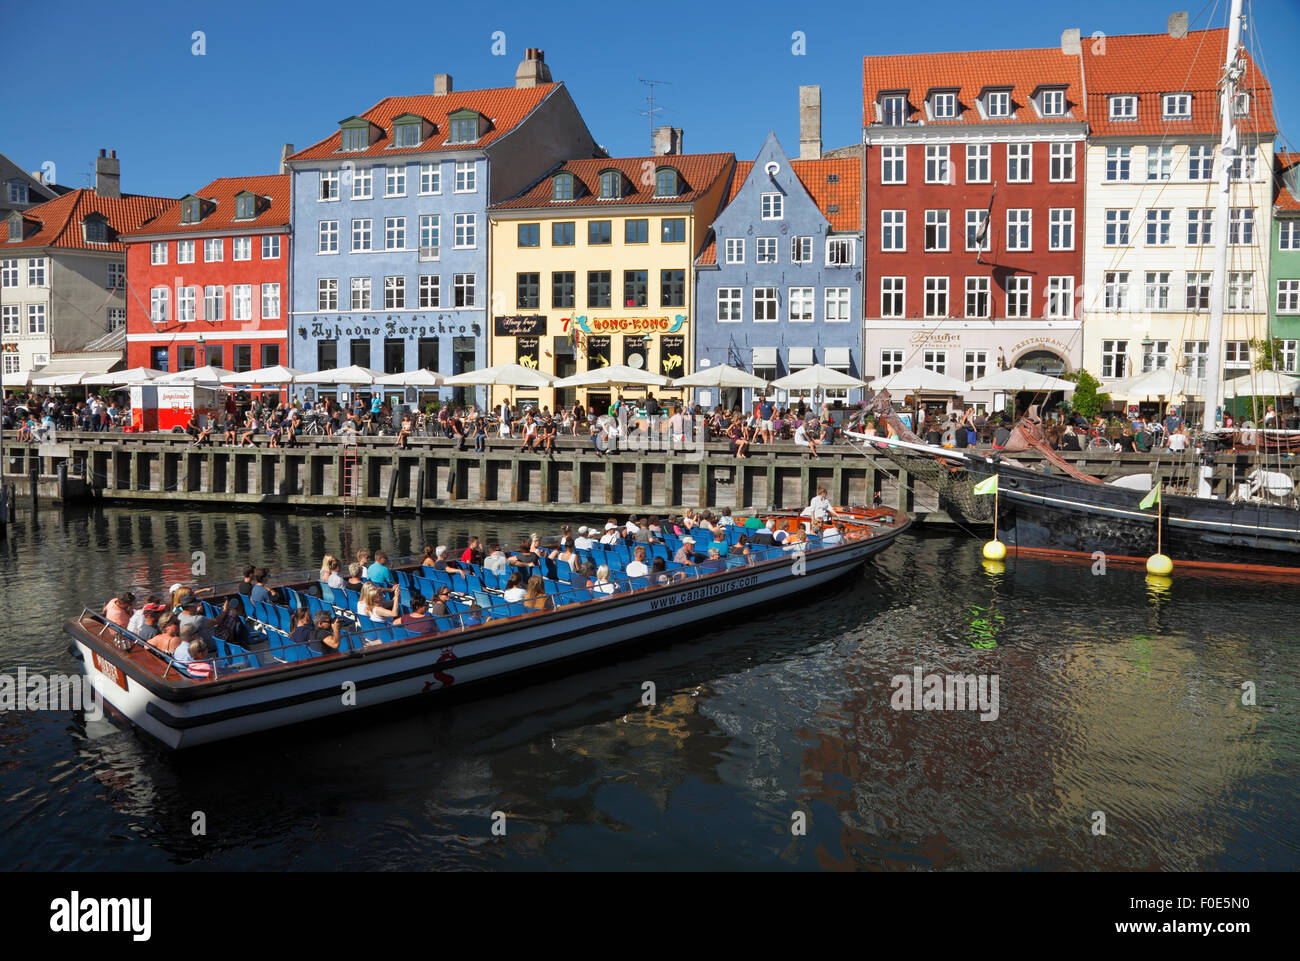 Canal tour boat turning around in crowded Nyhavn canal on a warm and sunny summer day full of tourists and visitors. - Stock Image